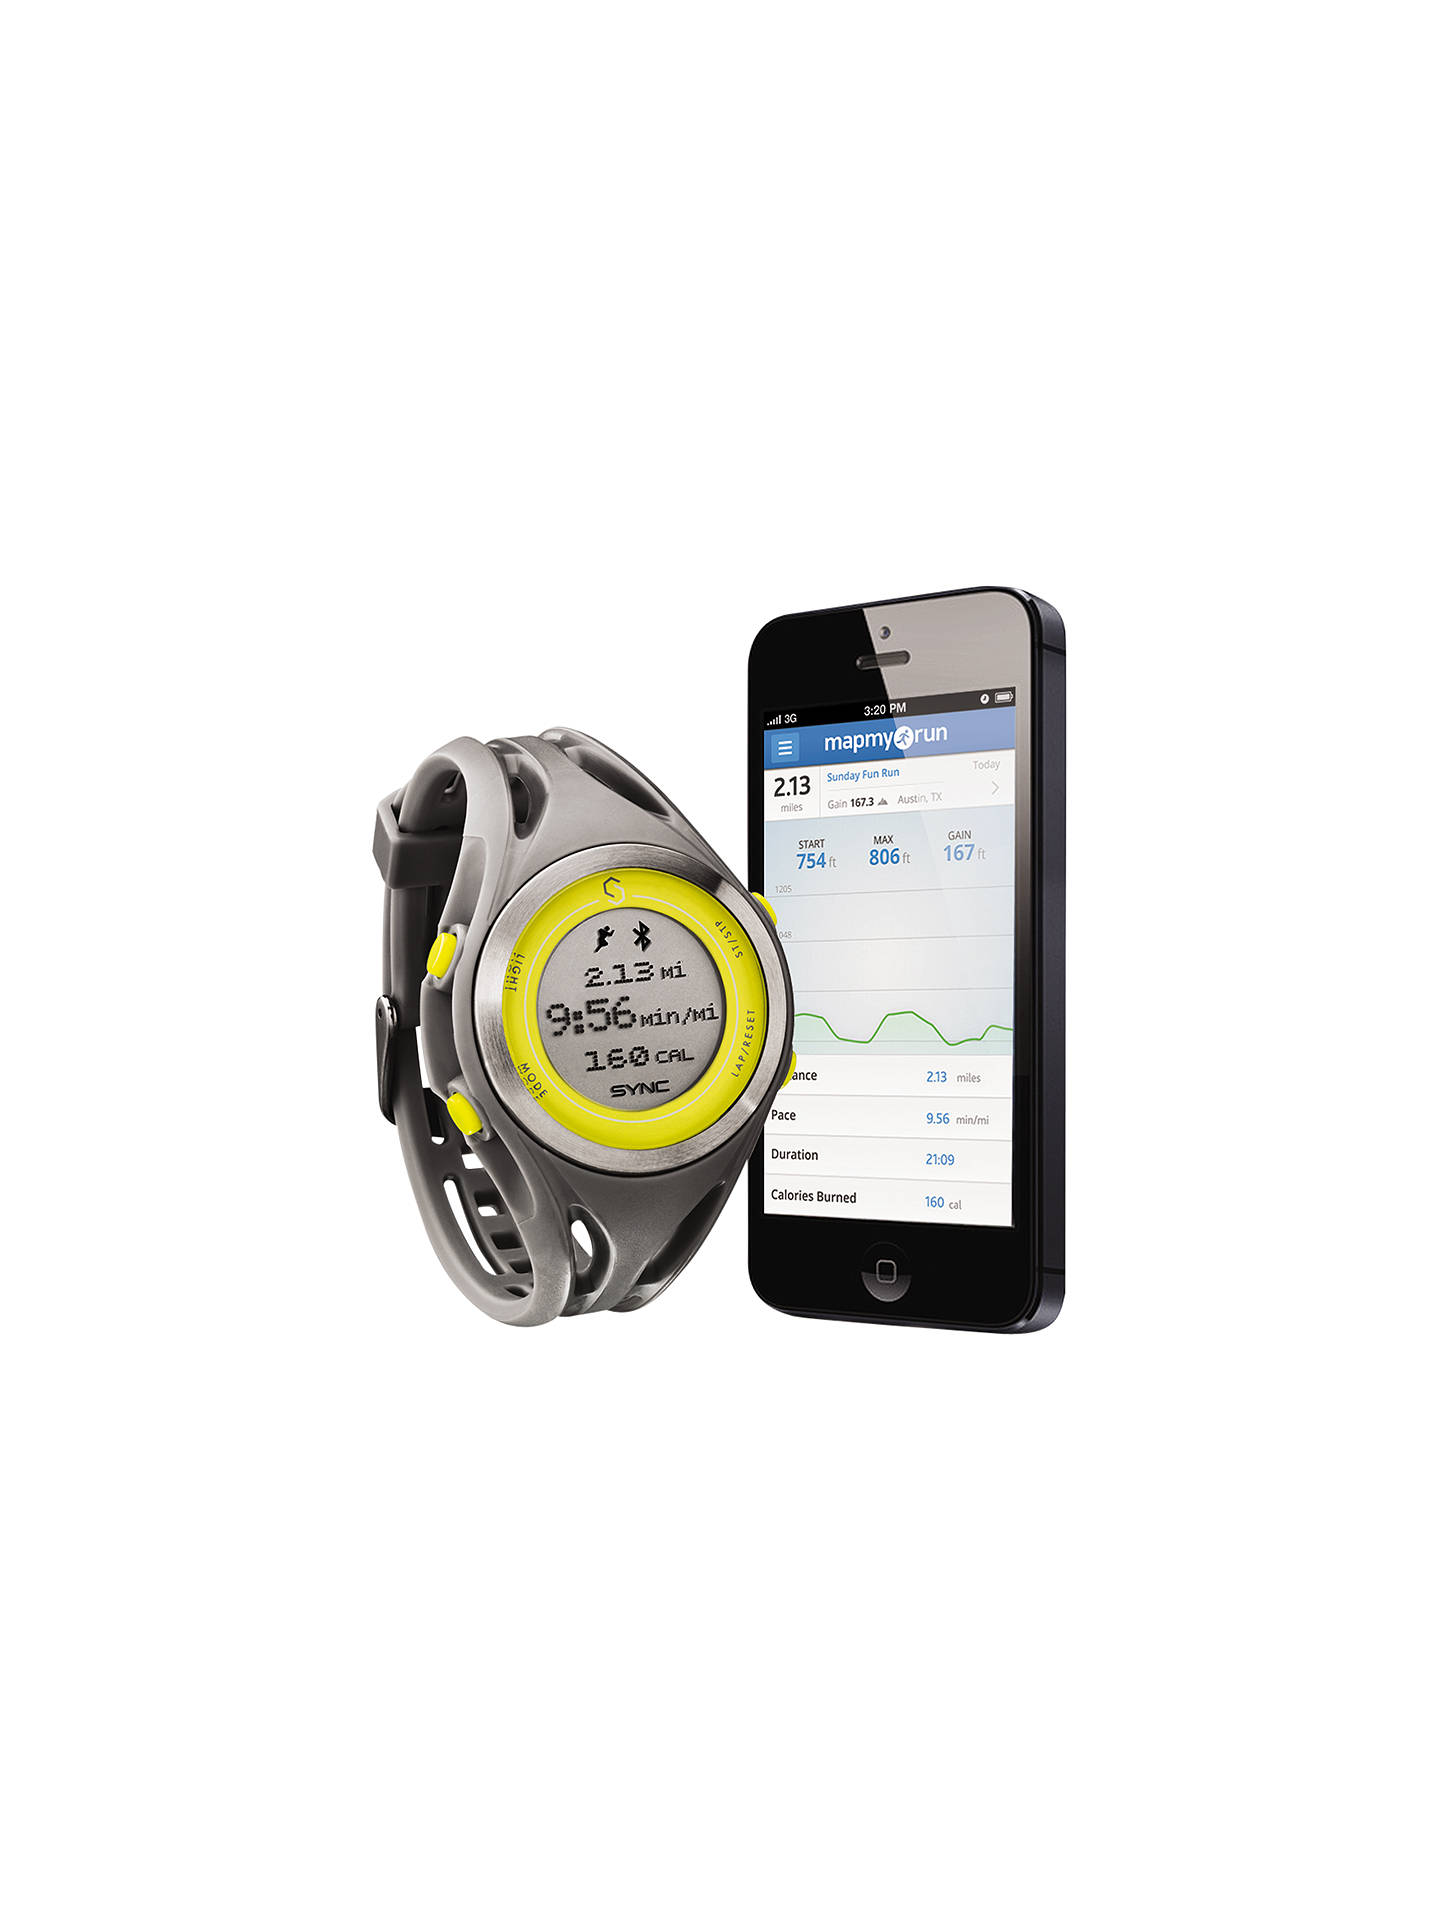 Sync Women's GPS Heart Rate Monitor Watch, Grey/Yellow at John Lewis